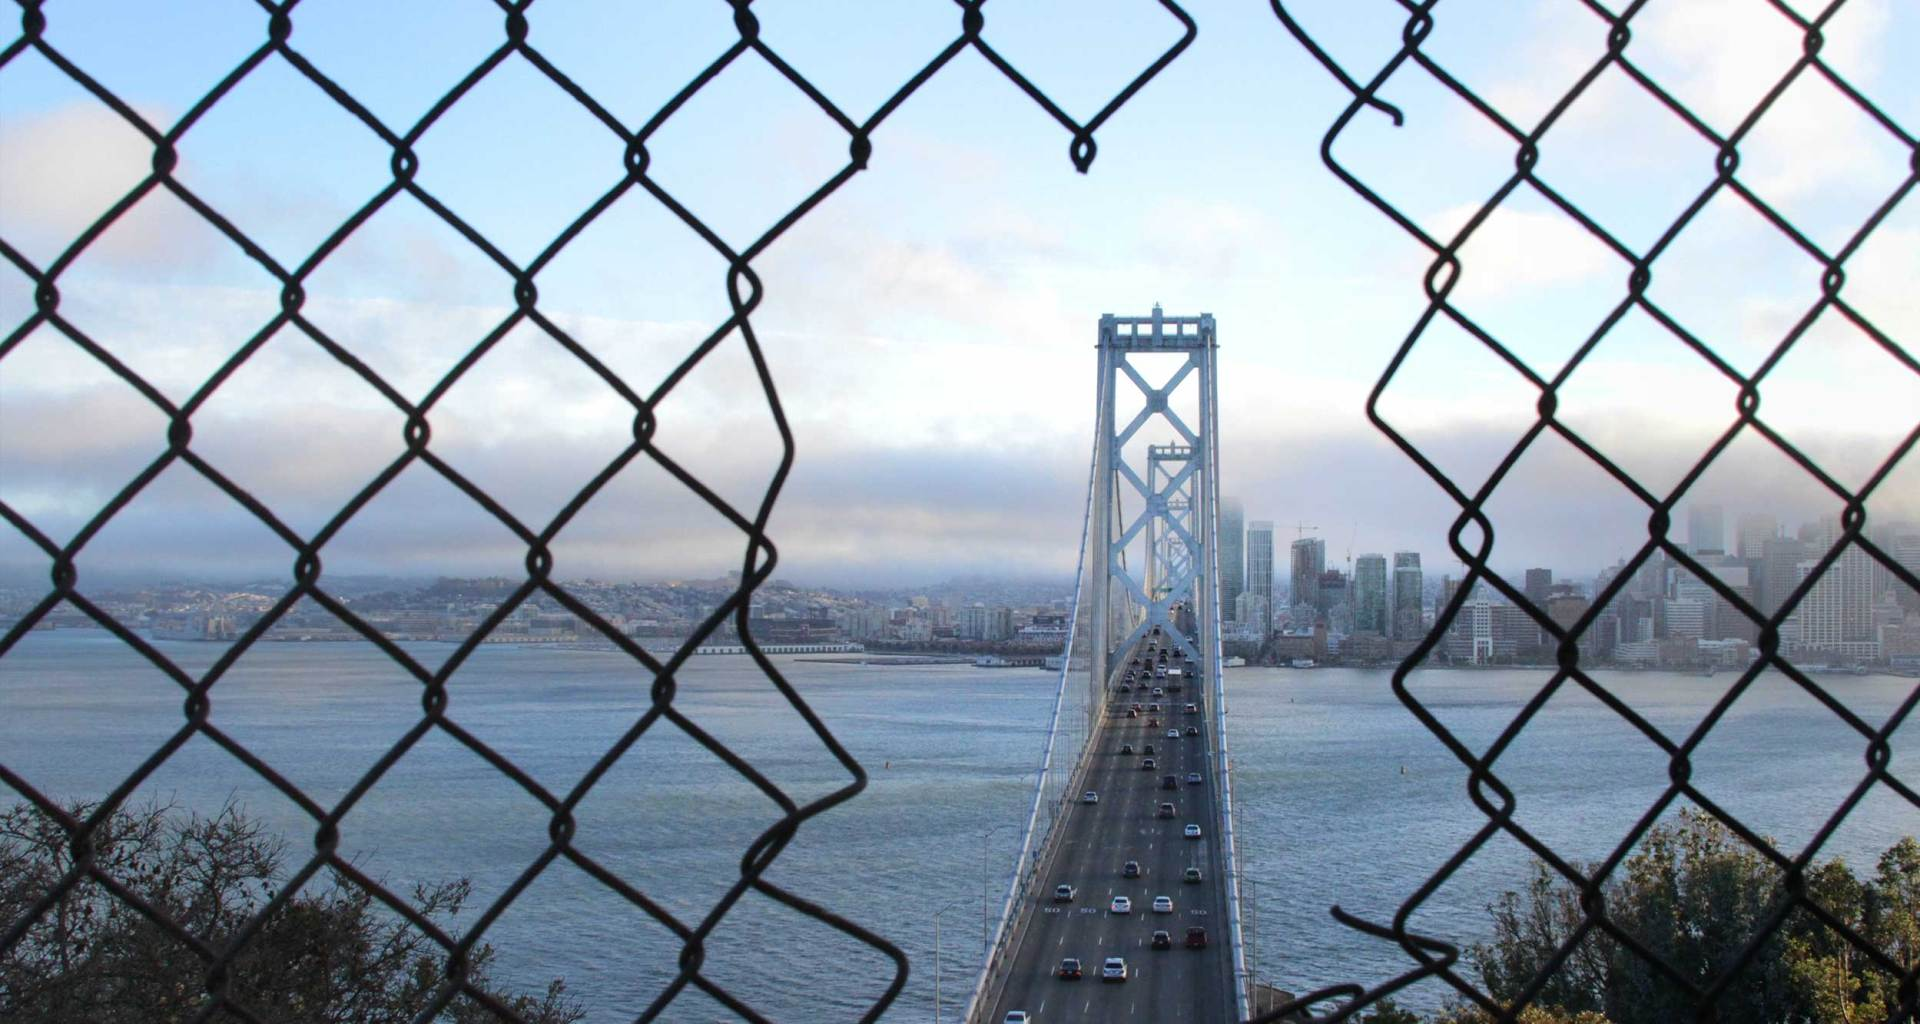 Bridge seen through wire fence.